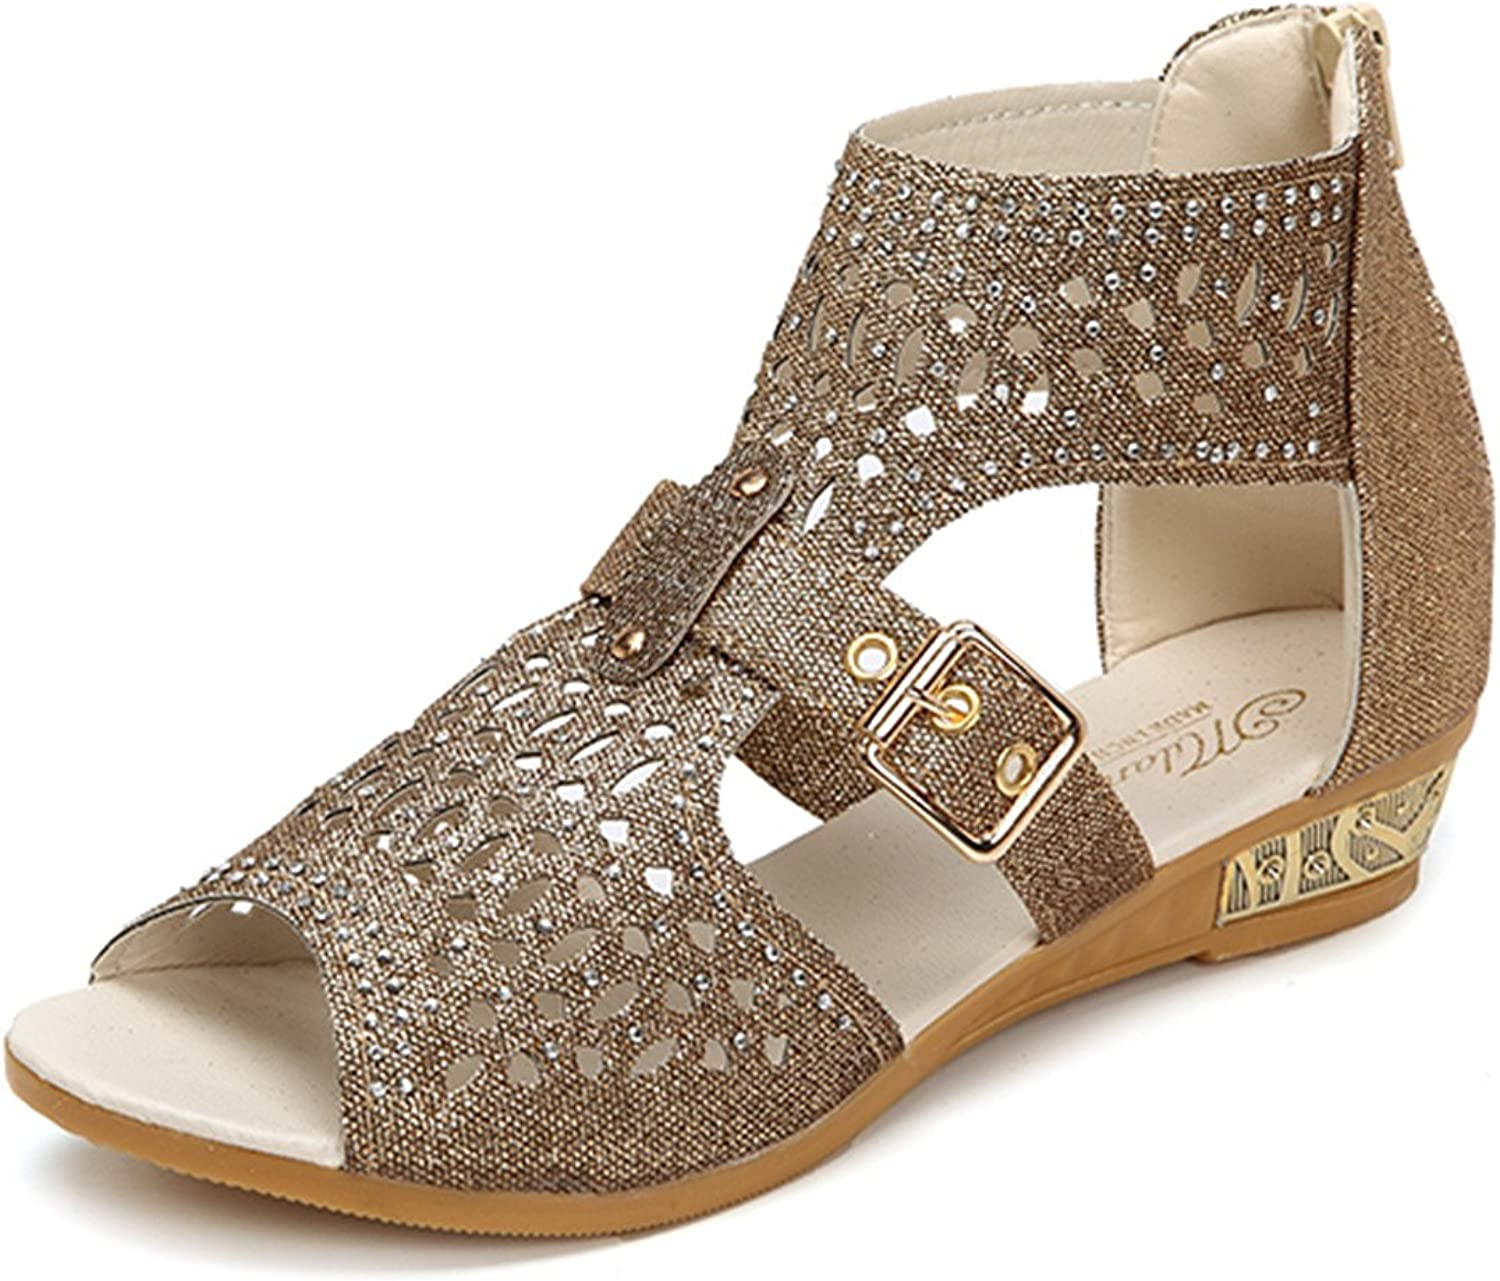 Gracosy Casual Sandals for Women,Summer Flats Peep Toe Rhinestone Hollow Out Wedges Zipper Roman Sandals